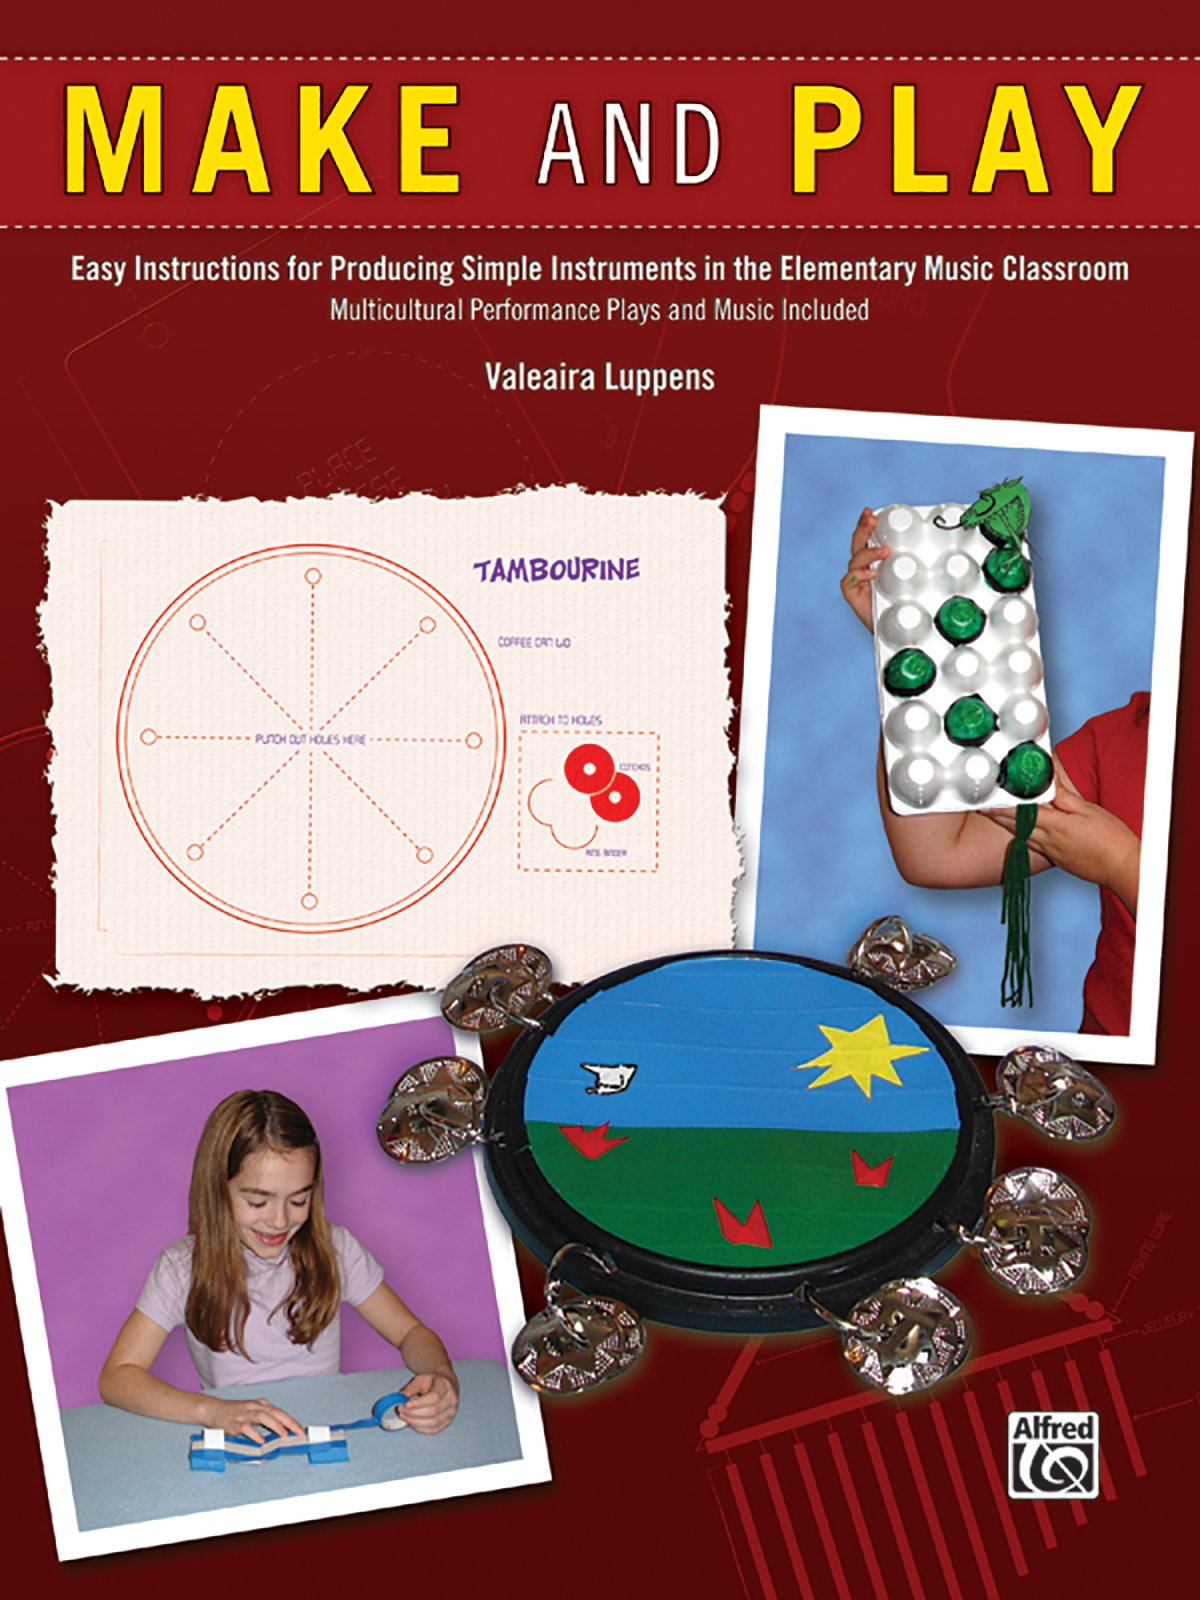 Make and Play: Easy Instructions for Producing Simple Instruments in the Elementary Music Classroom ebook